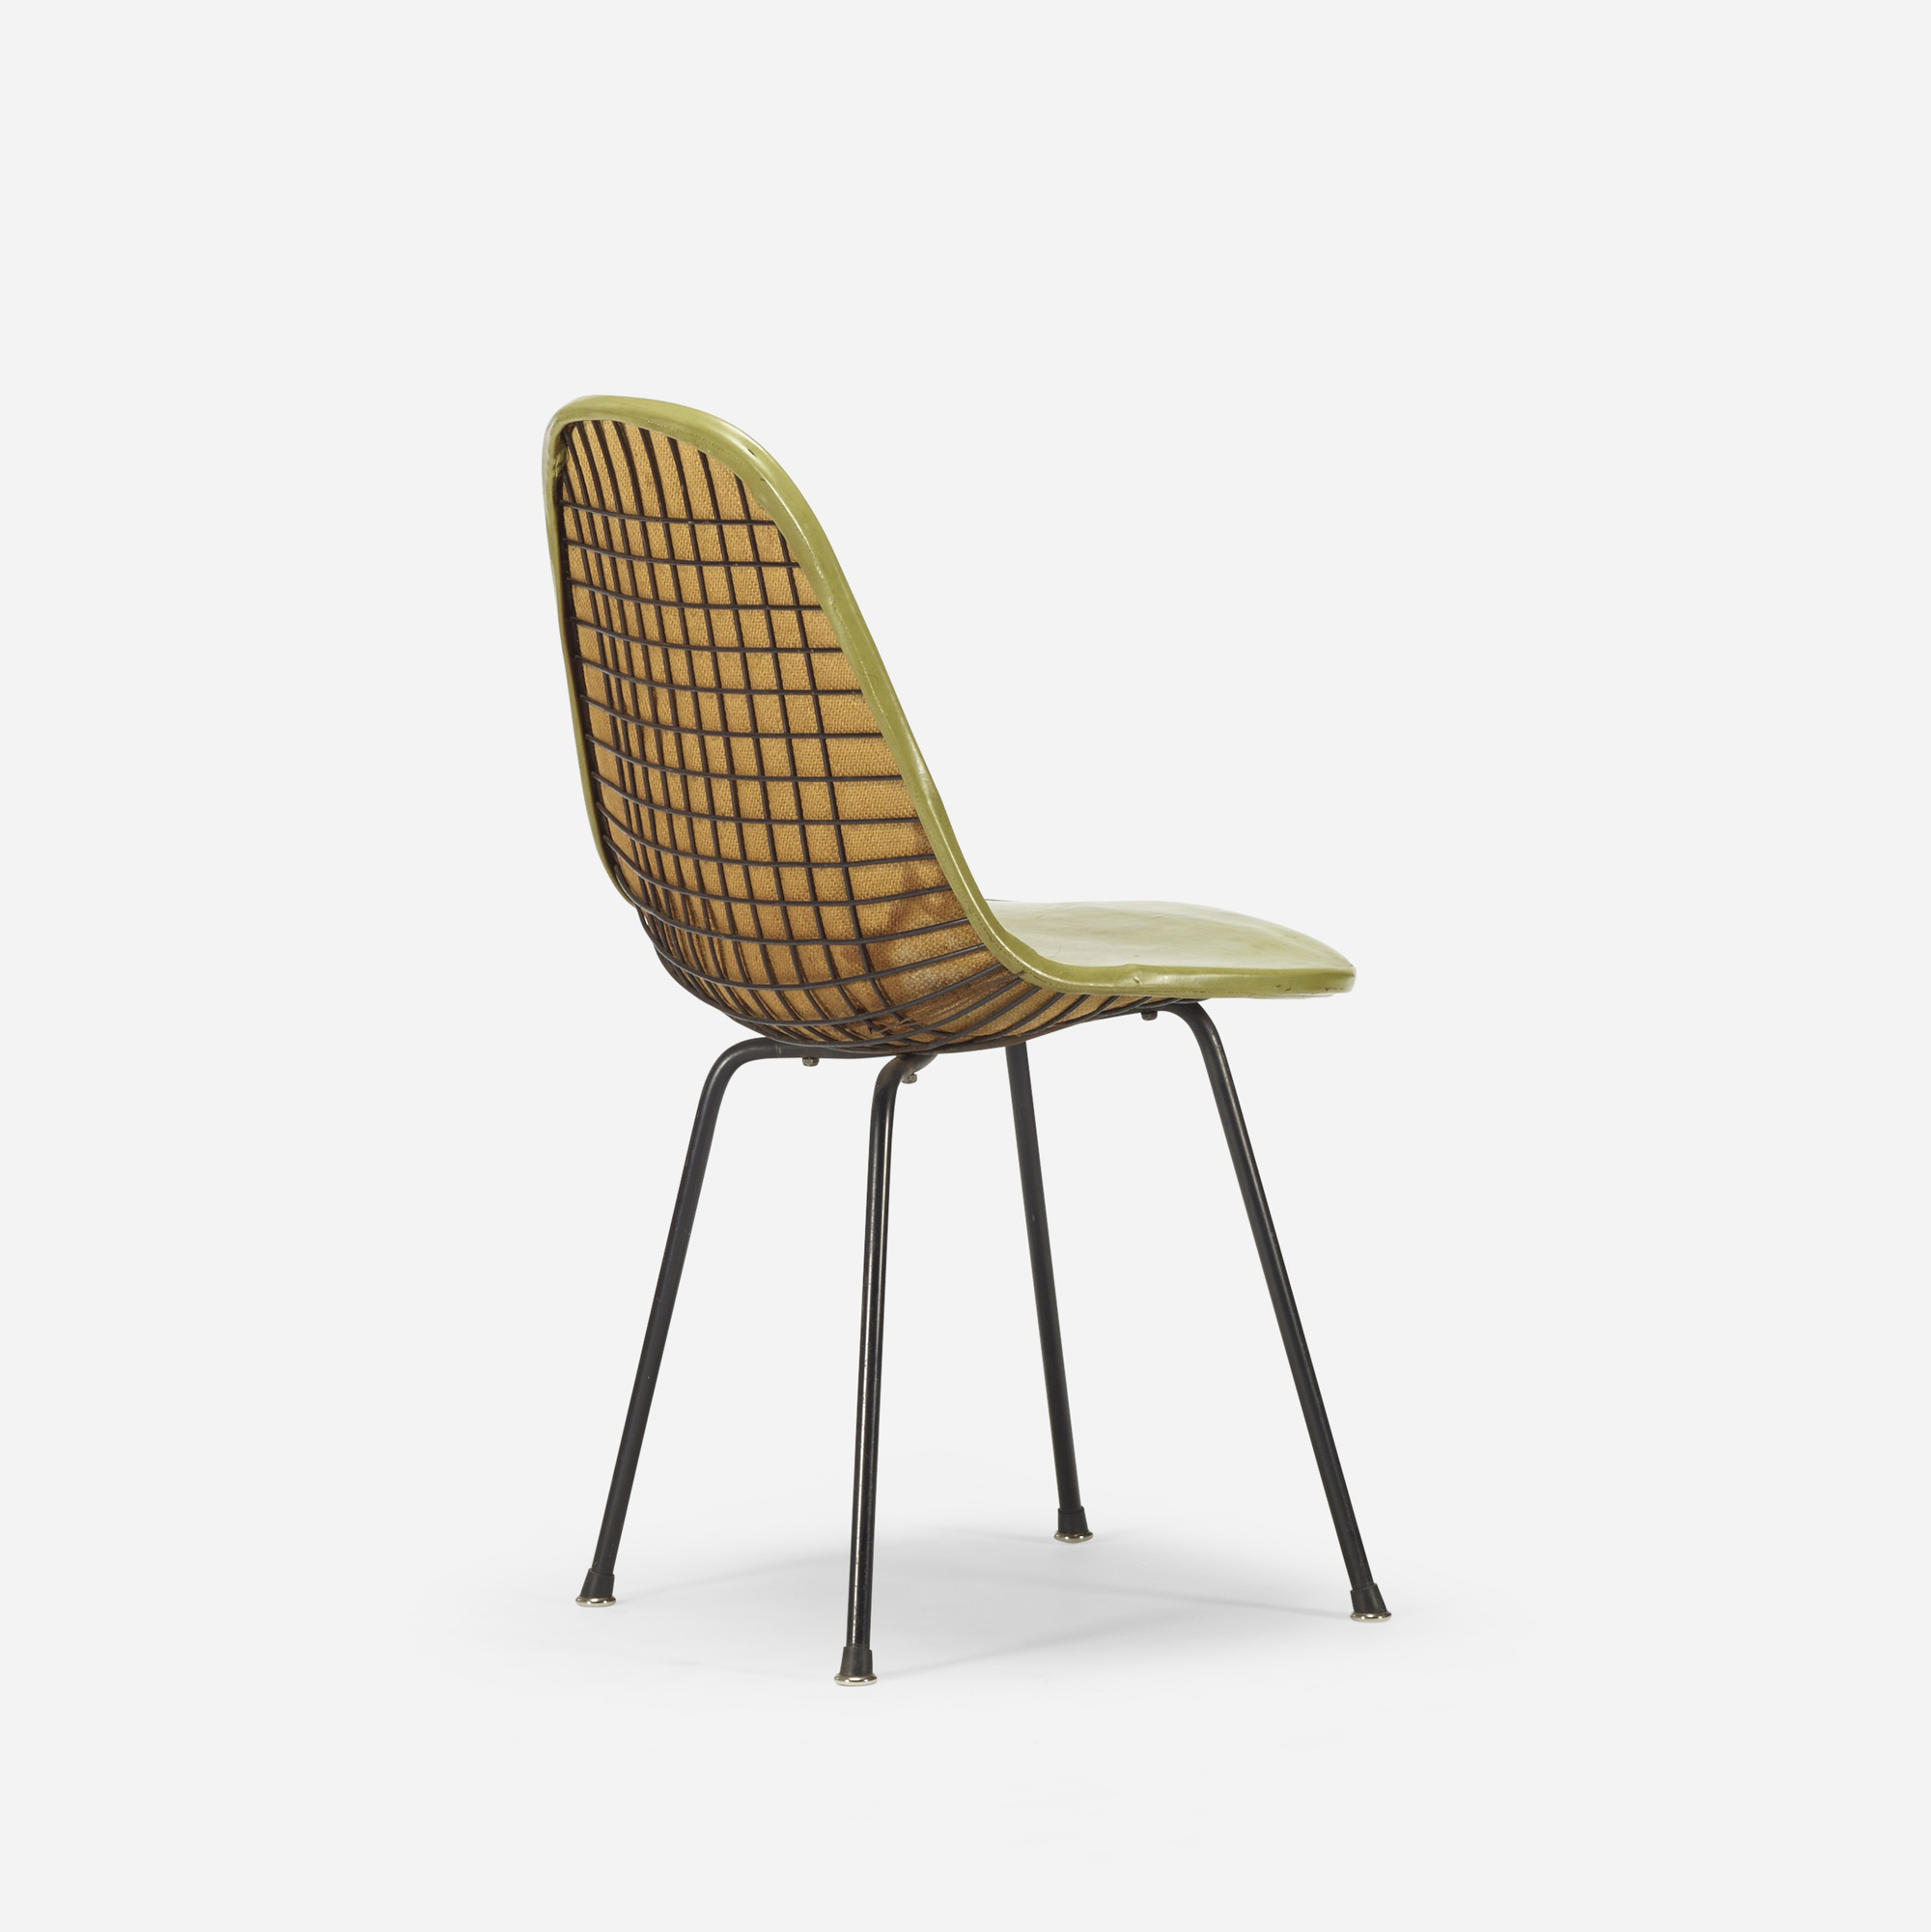 255: Charles and Ray Eames / DKX-1 (2 of 2)